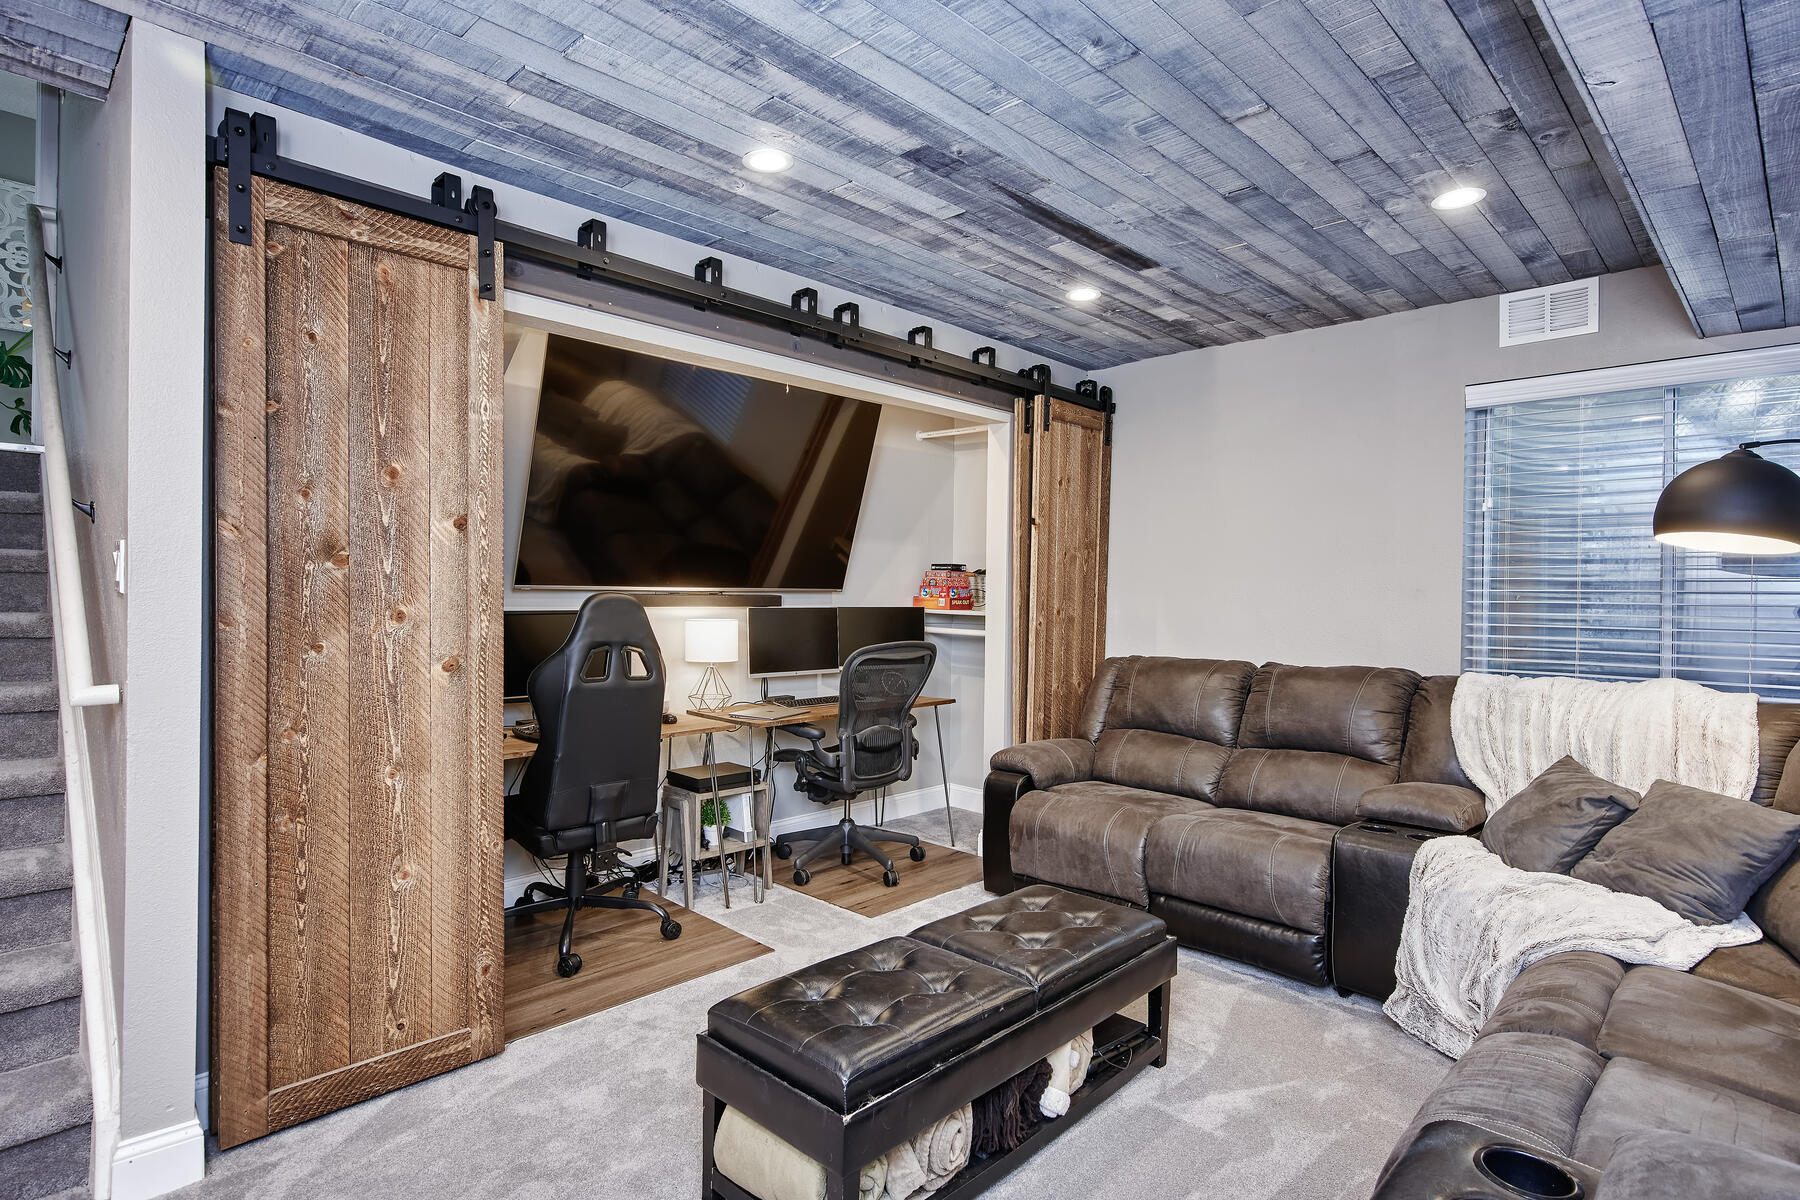 Currently Used as Home Office Space & TV Room